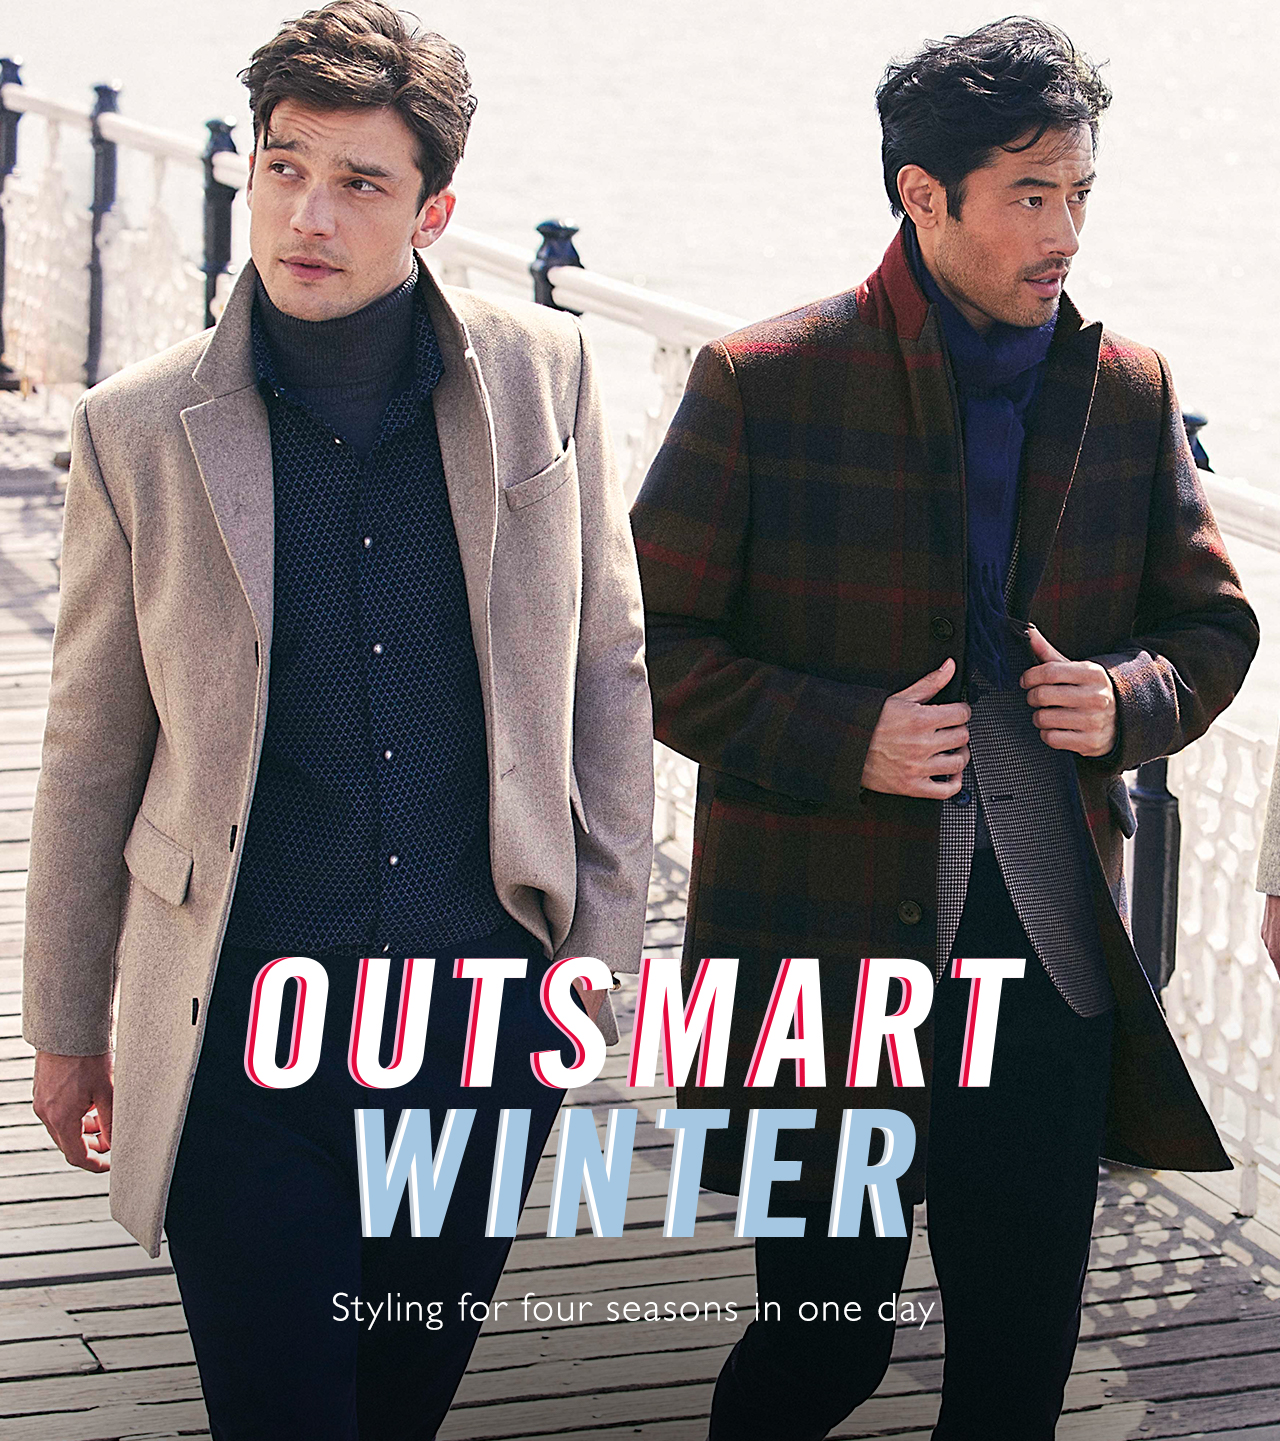 Outsmart winter. Styling for four seasons in one day